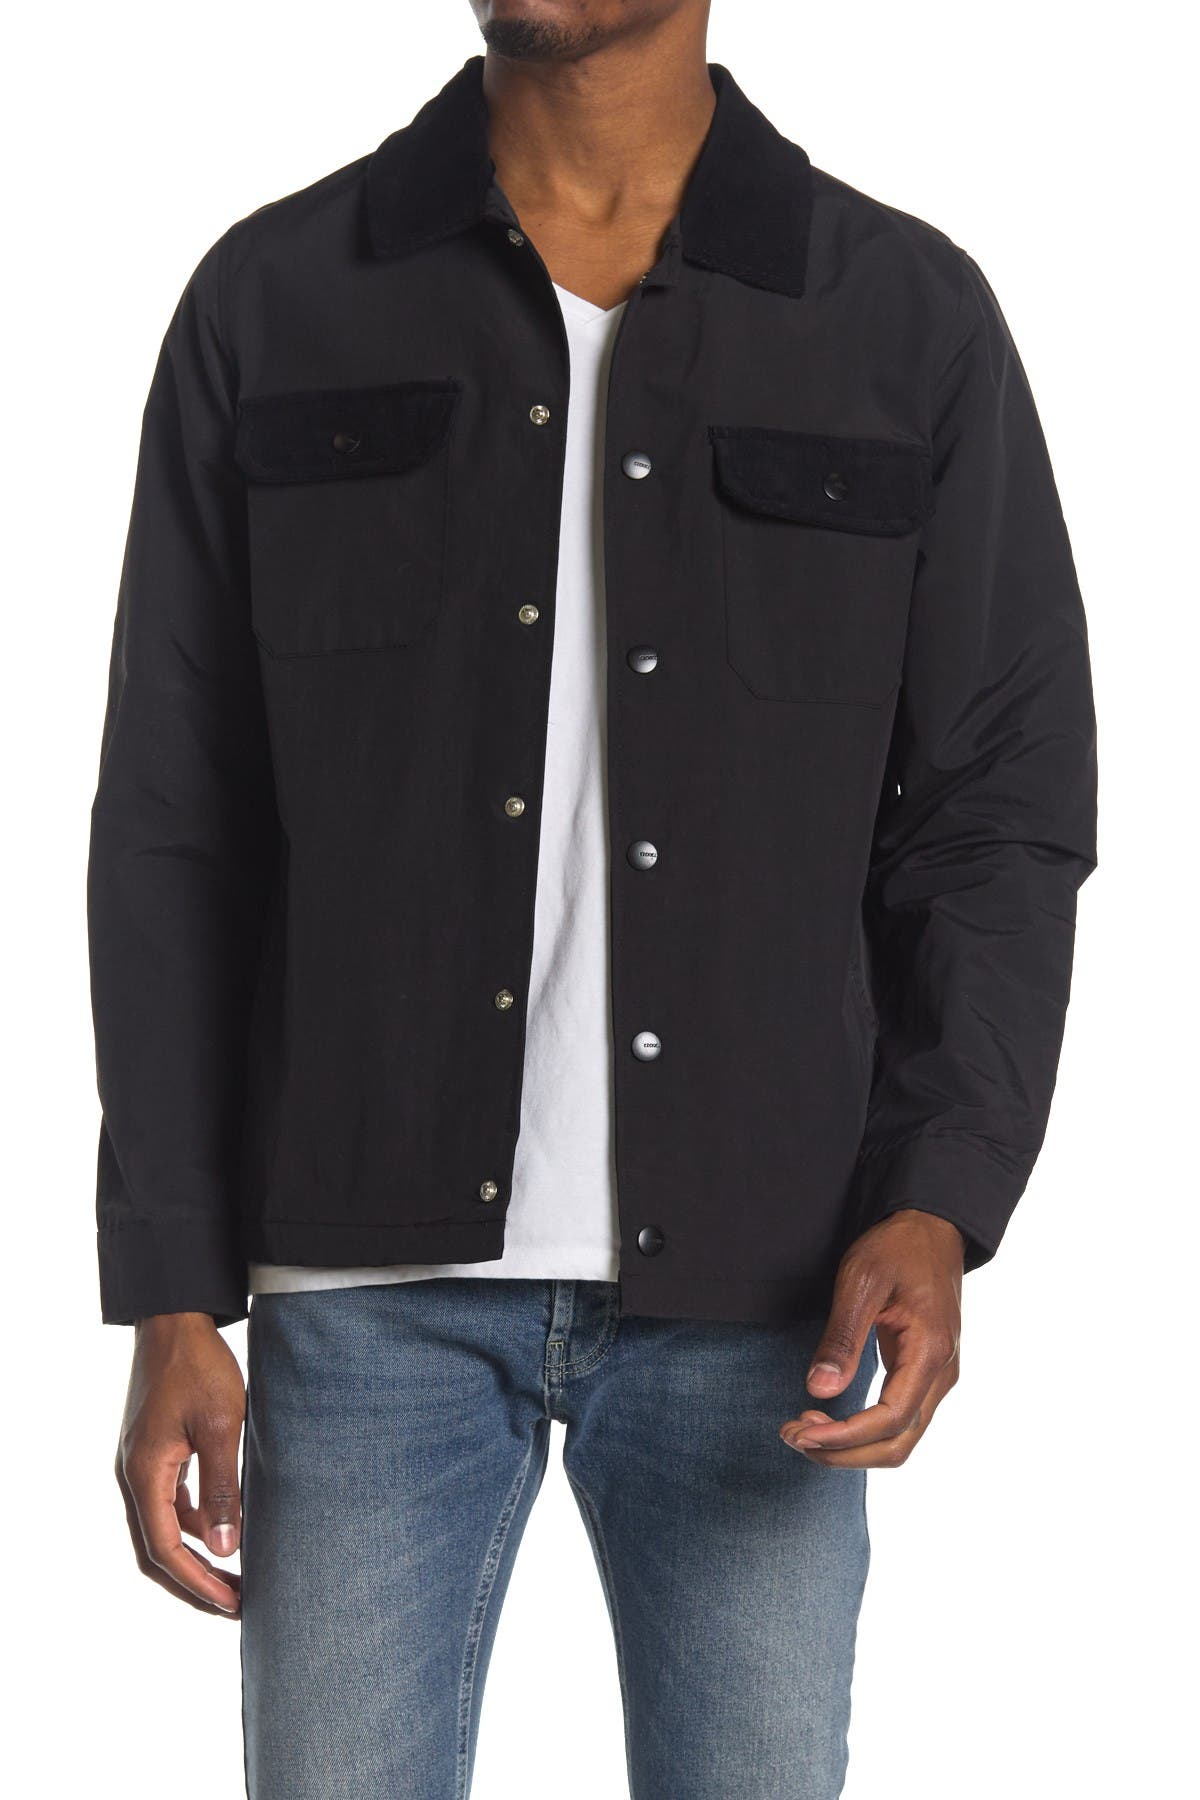 Image of Ezekiel Kraft Jacket